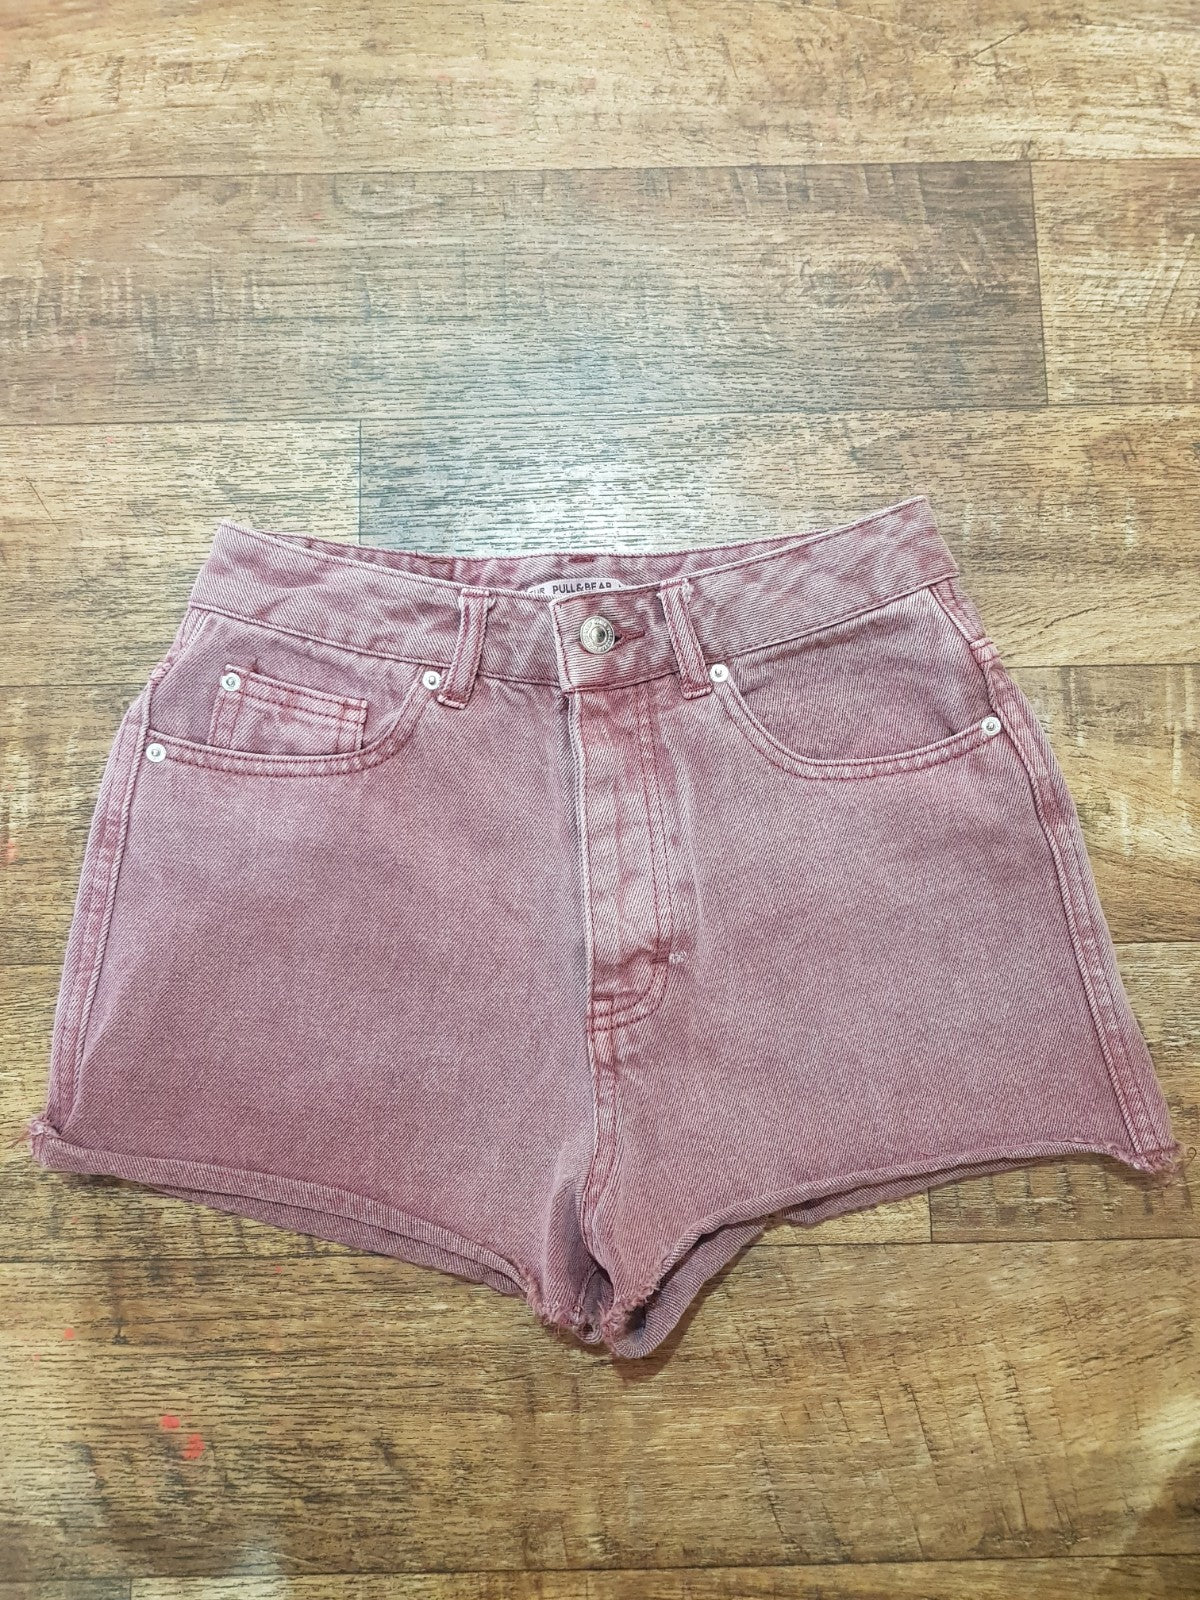 Pre-loved Maroon Denim Shorts. Size 24.